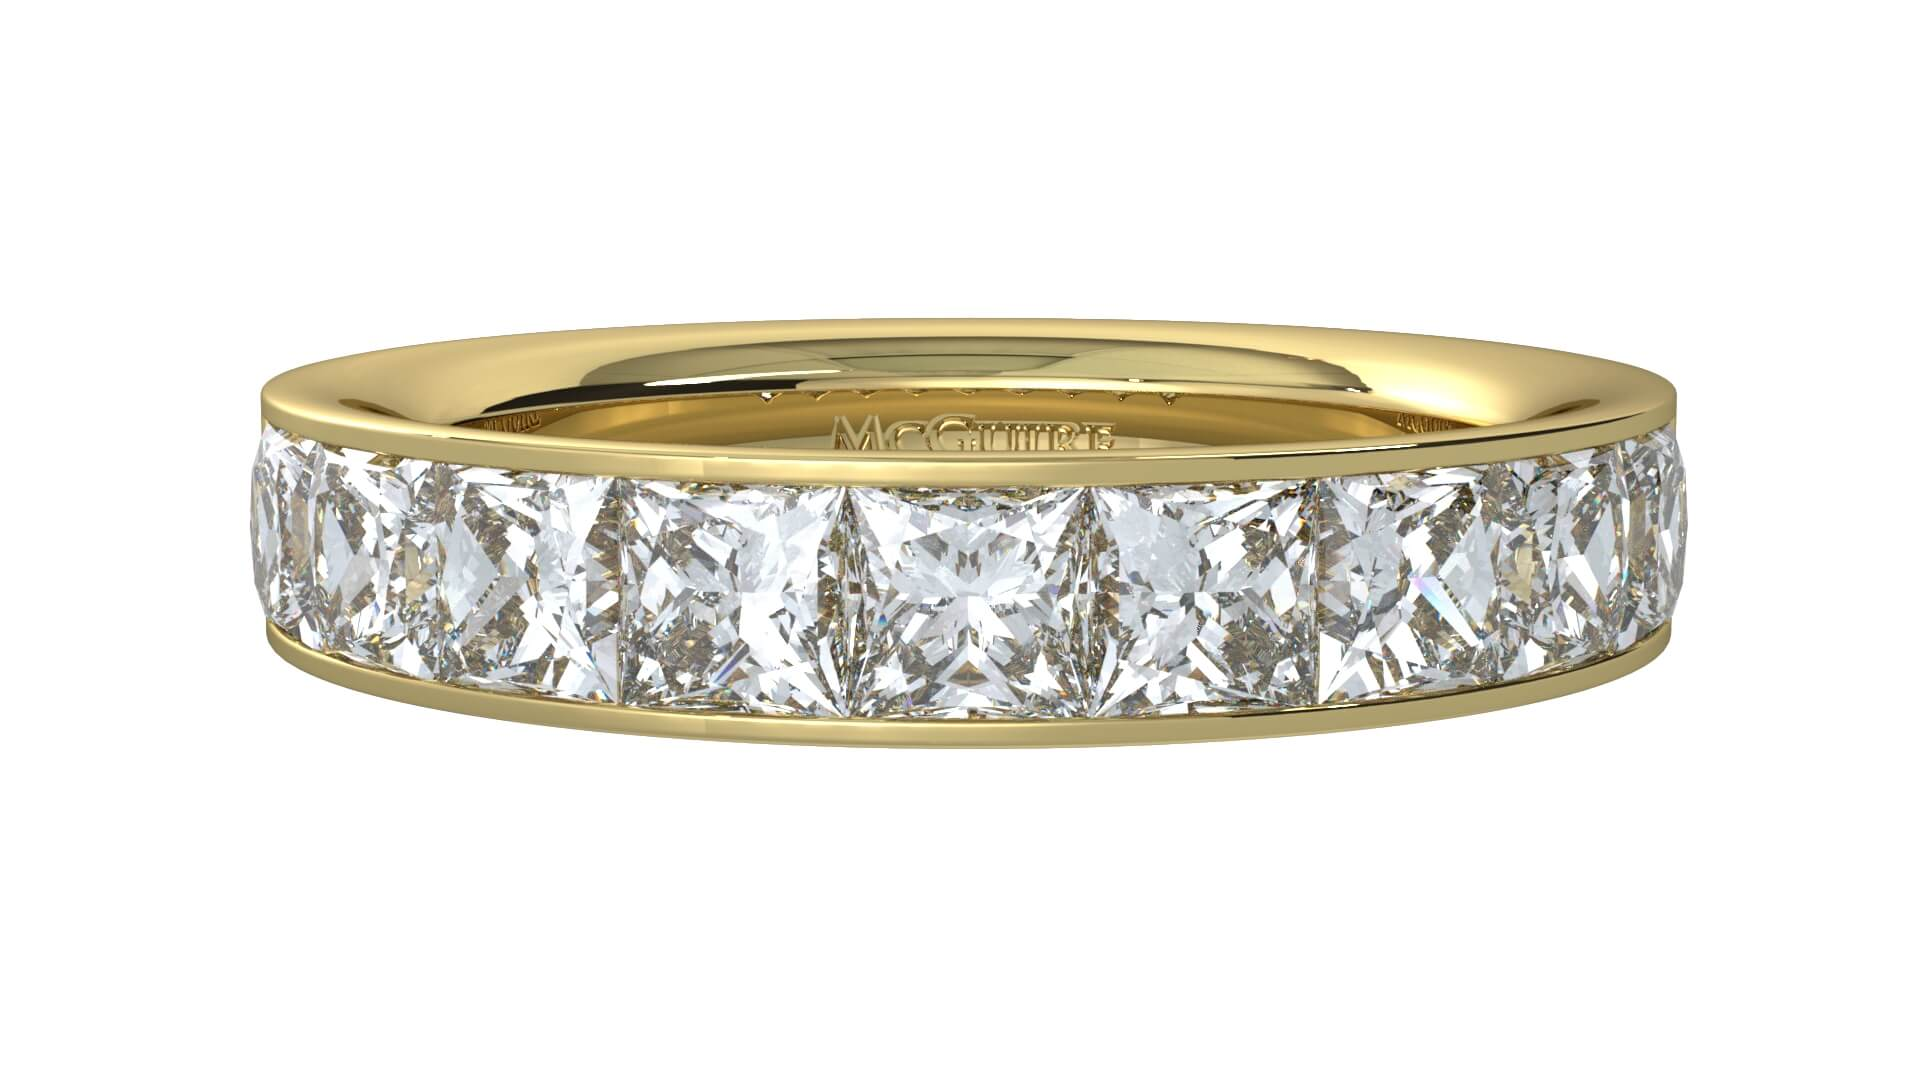 diamond set wedding ring in 18ct yellow gold